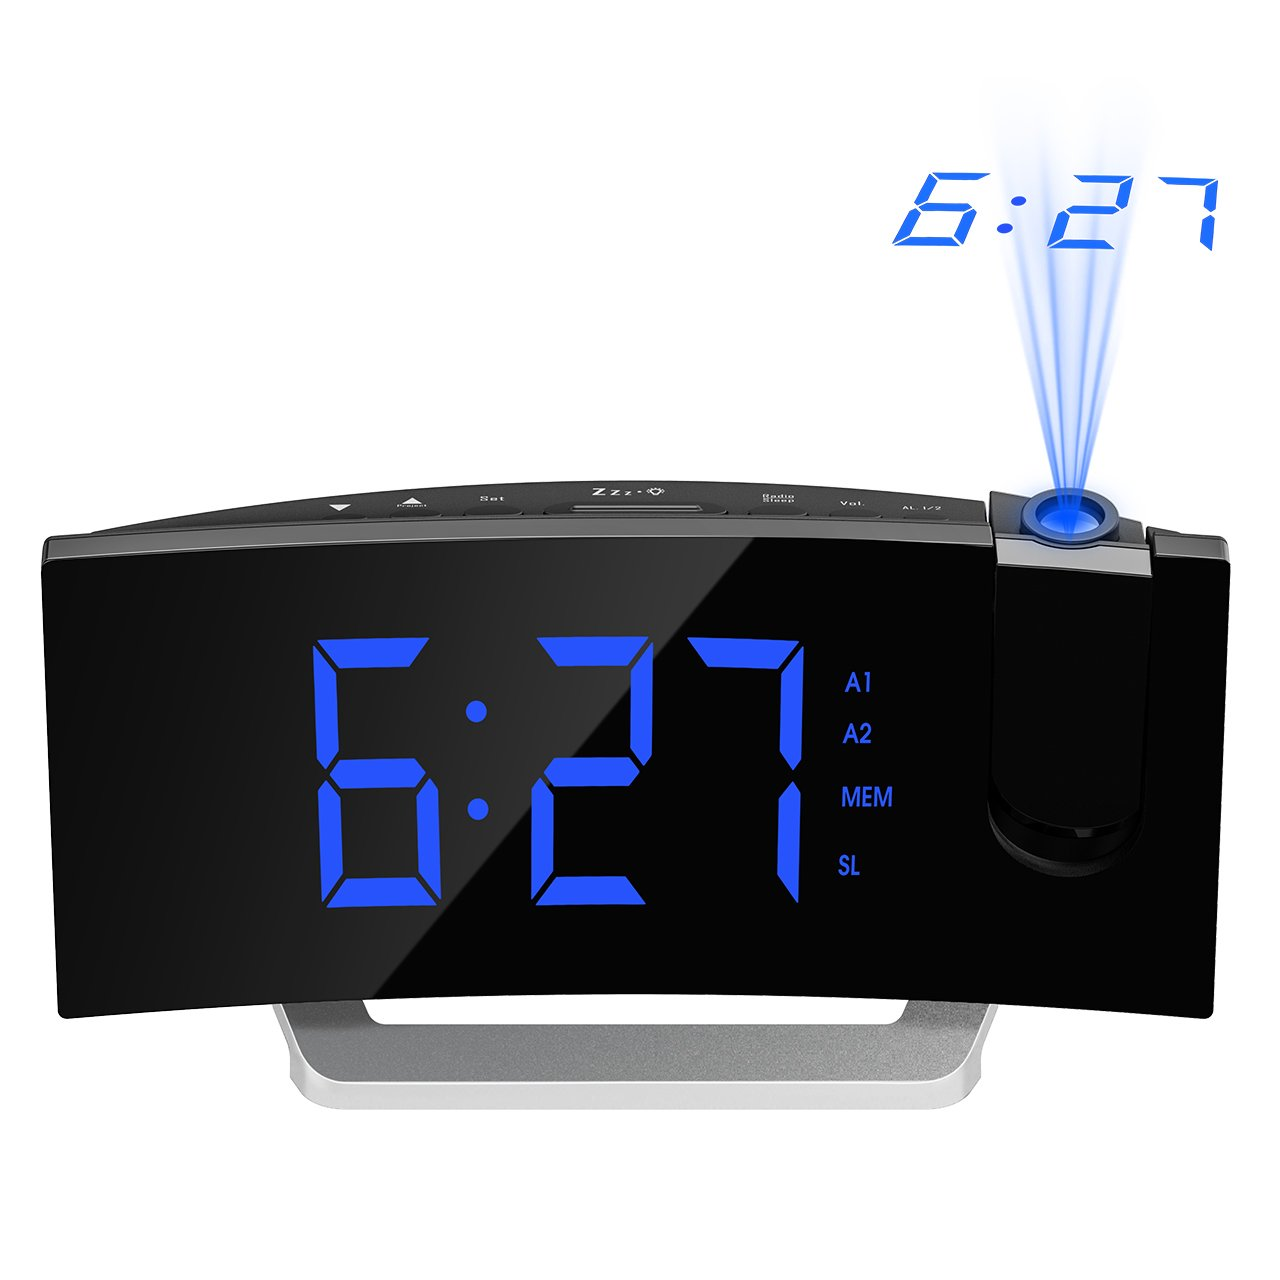 Mpow [GEN-3] Projection Alarm Clock, Curved-Screen Projection Clocks with 5'' Dimmer LED Display, Digital Clock for Bedroom, Dual Alarms with 30 Minute Ring Time, 12/24 Hour, Backup for Clock Setting by Mpow